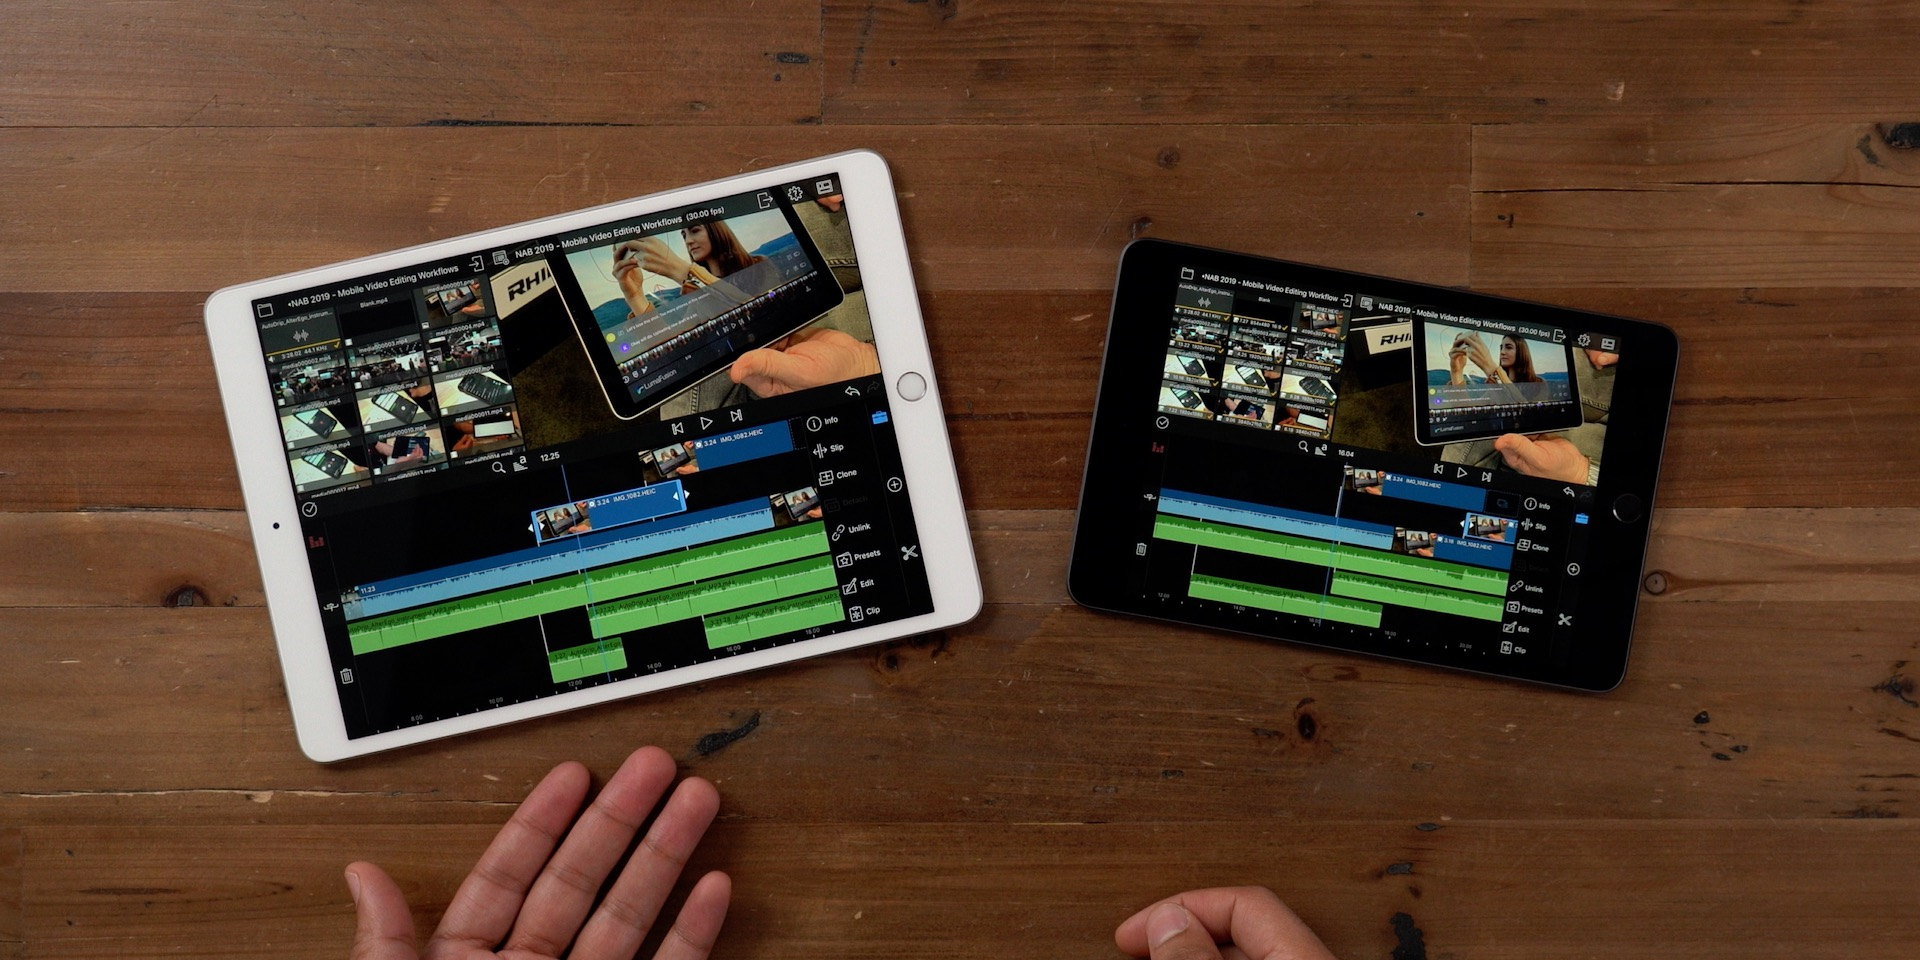 iPad mini 5 review: when portability is what's most